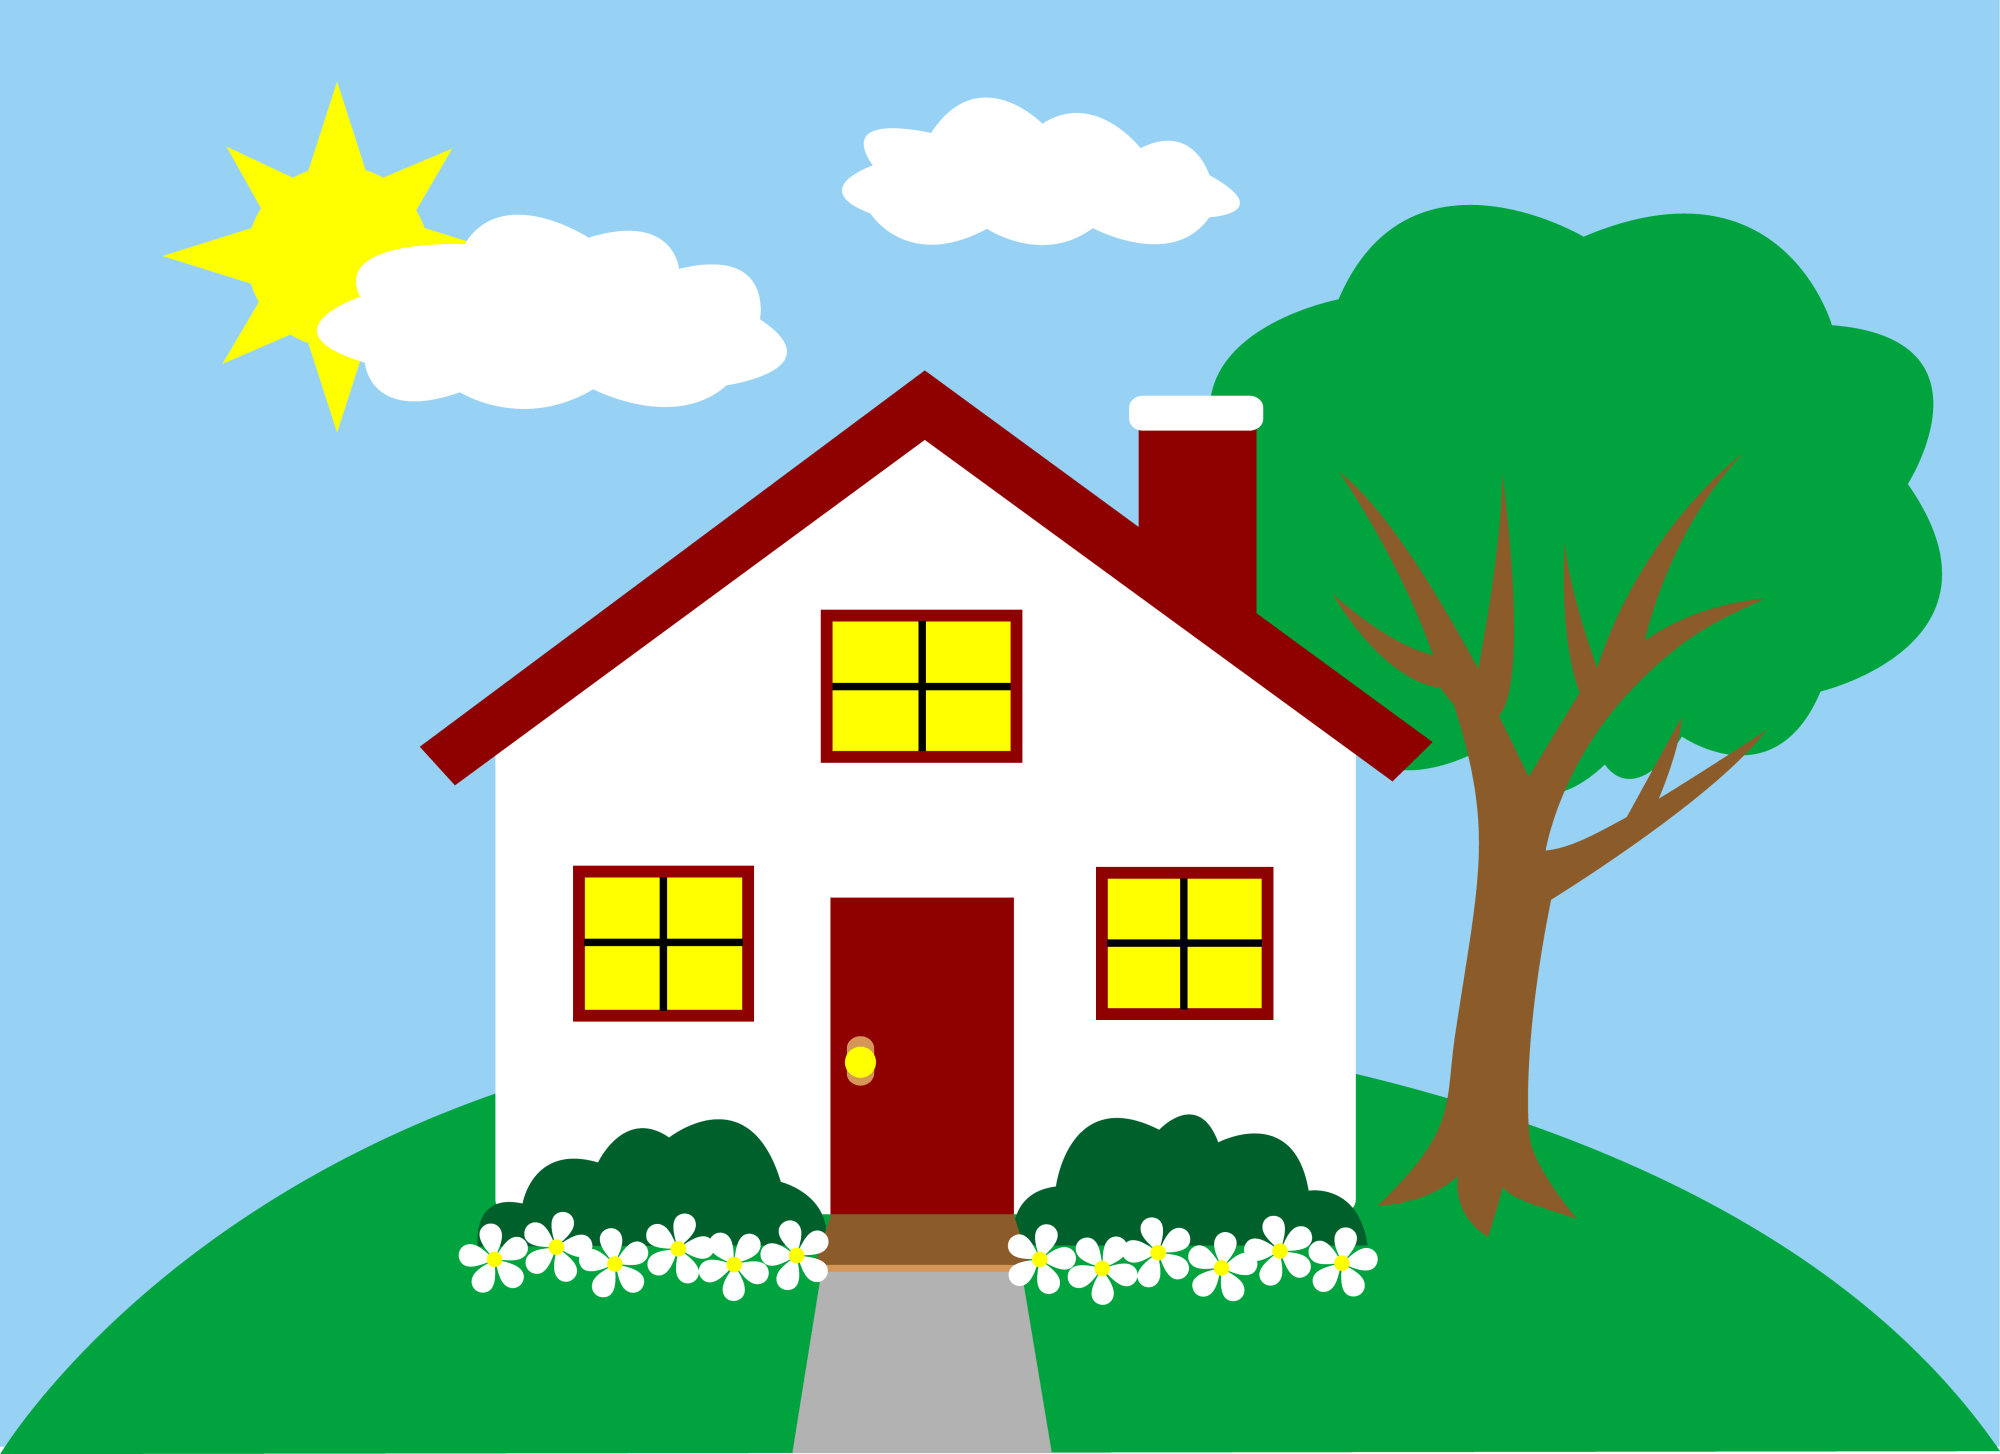 hight resolution of clipart houses apartments clipart library free clipart images